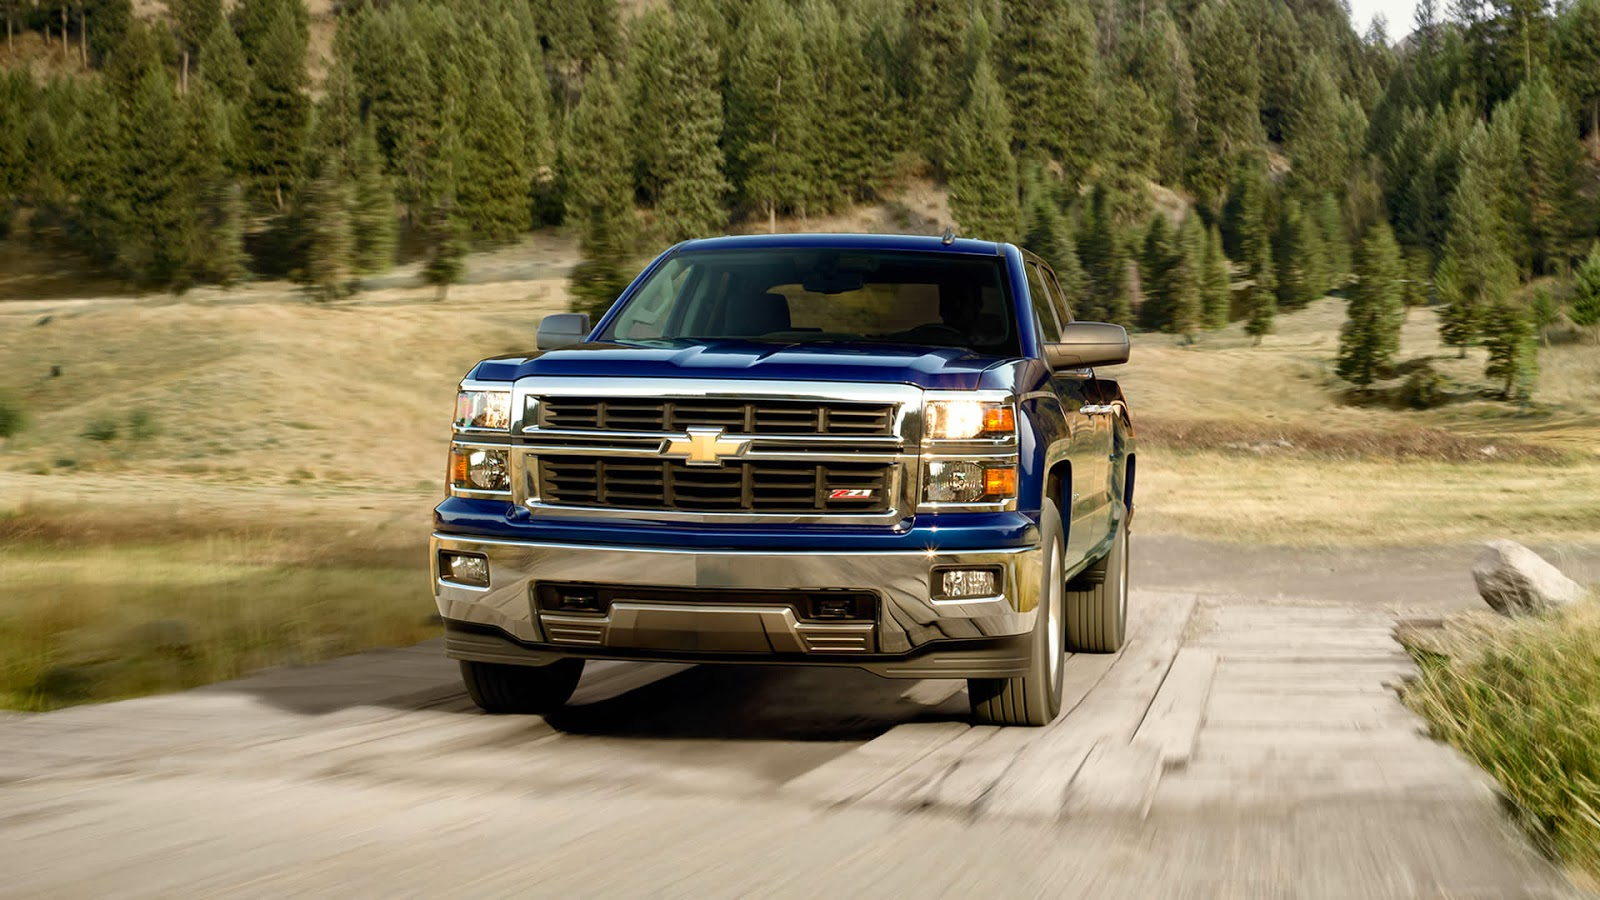 2014 Chevy Silverado Benefits From Intense Durability Testing